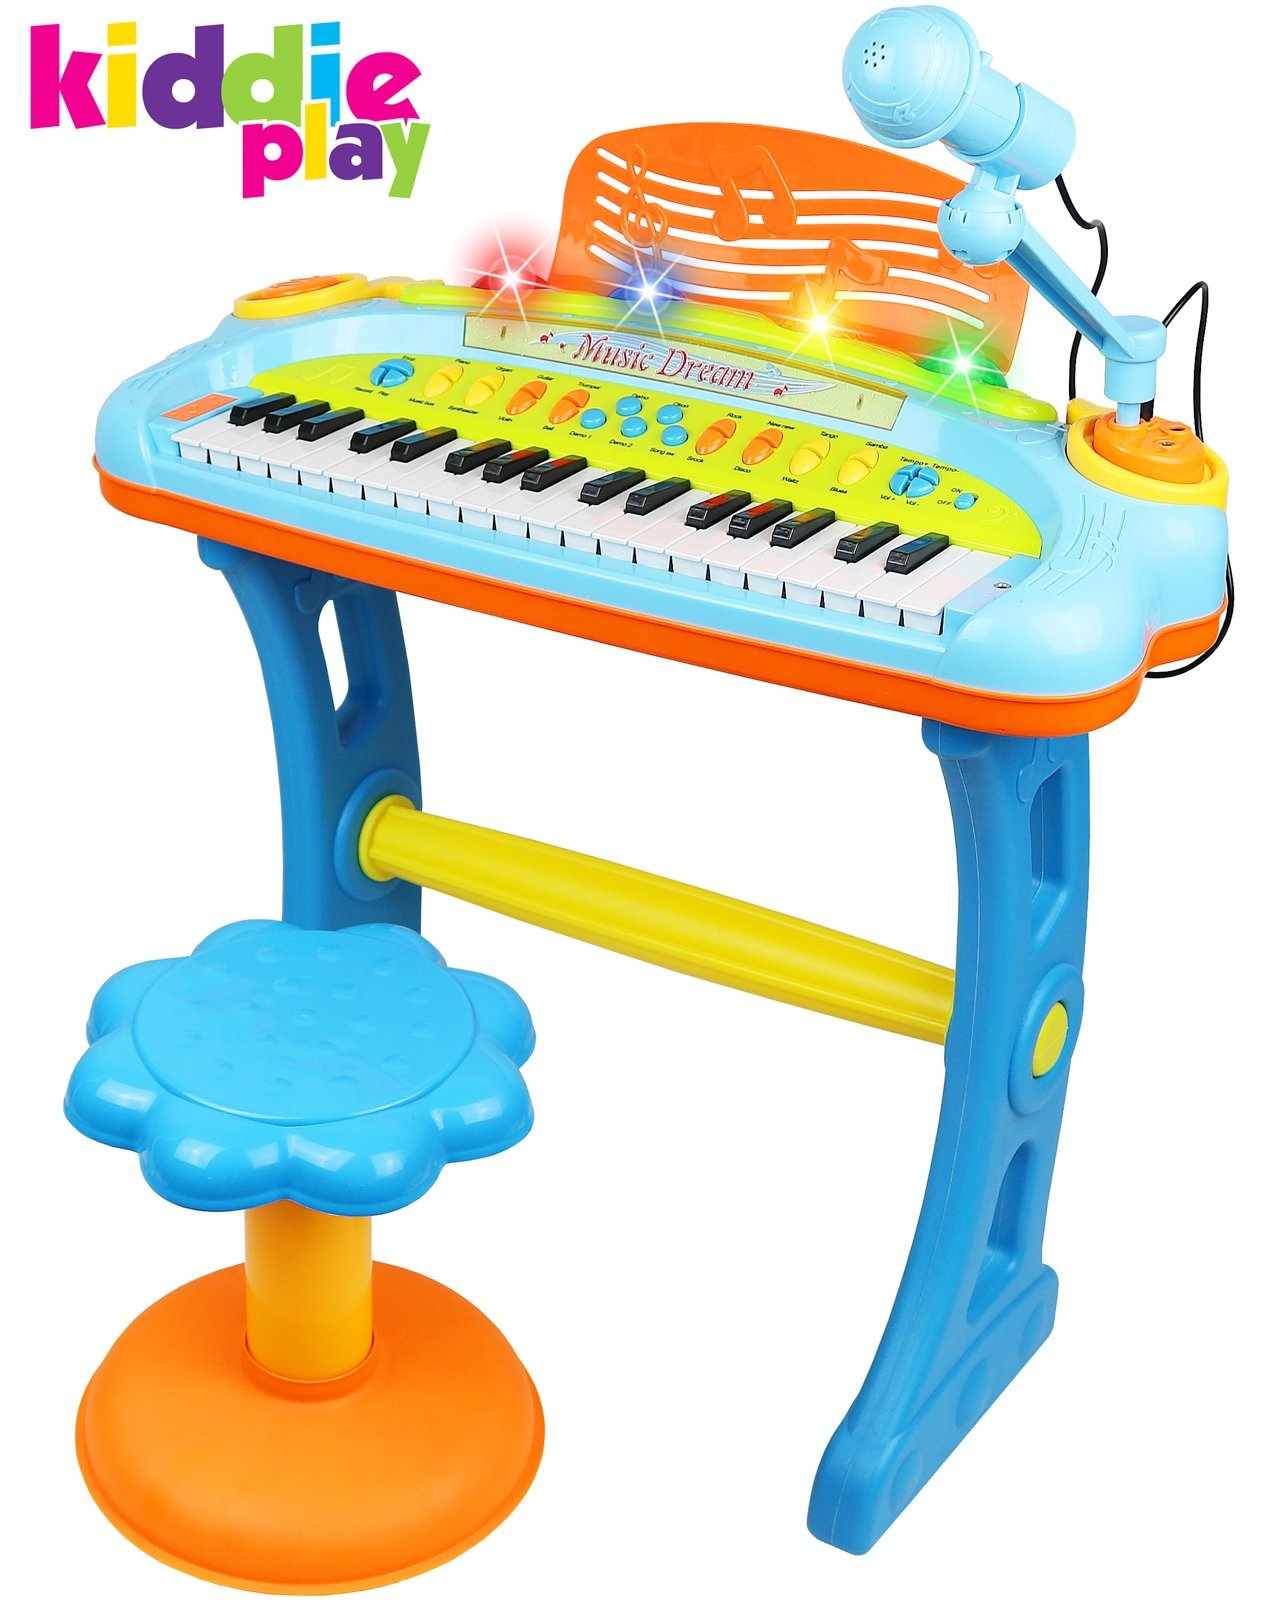 Kiddie Play Electronic 37-Key Toy Piano Keyboard for Kids with Real Working Microphone, Colorful Lights and Stool (with USB Adapter) by Kiddie Play